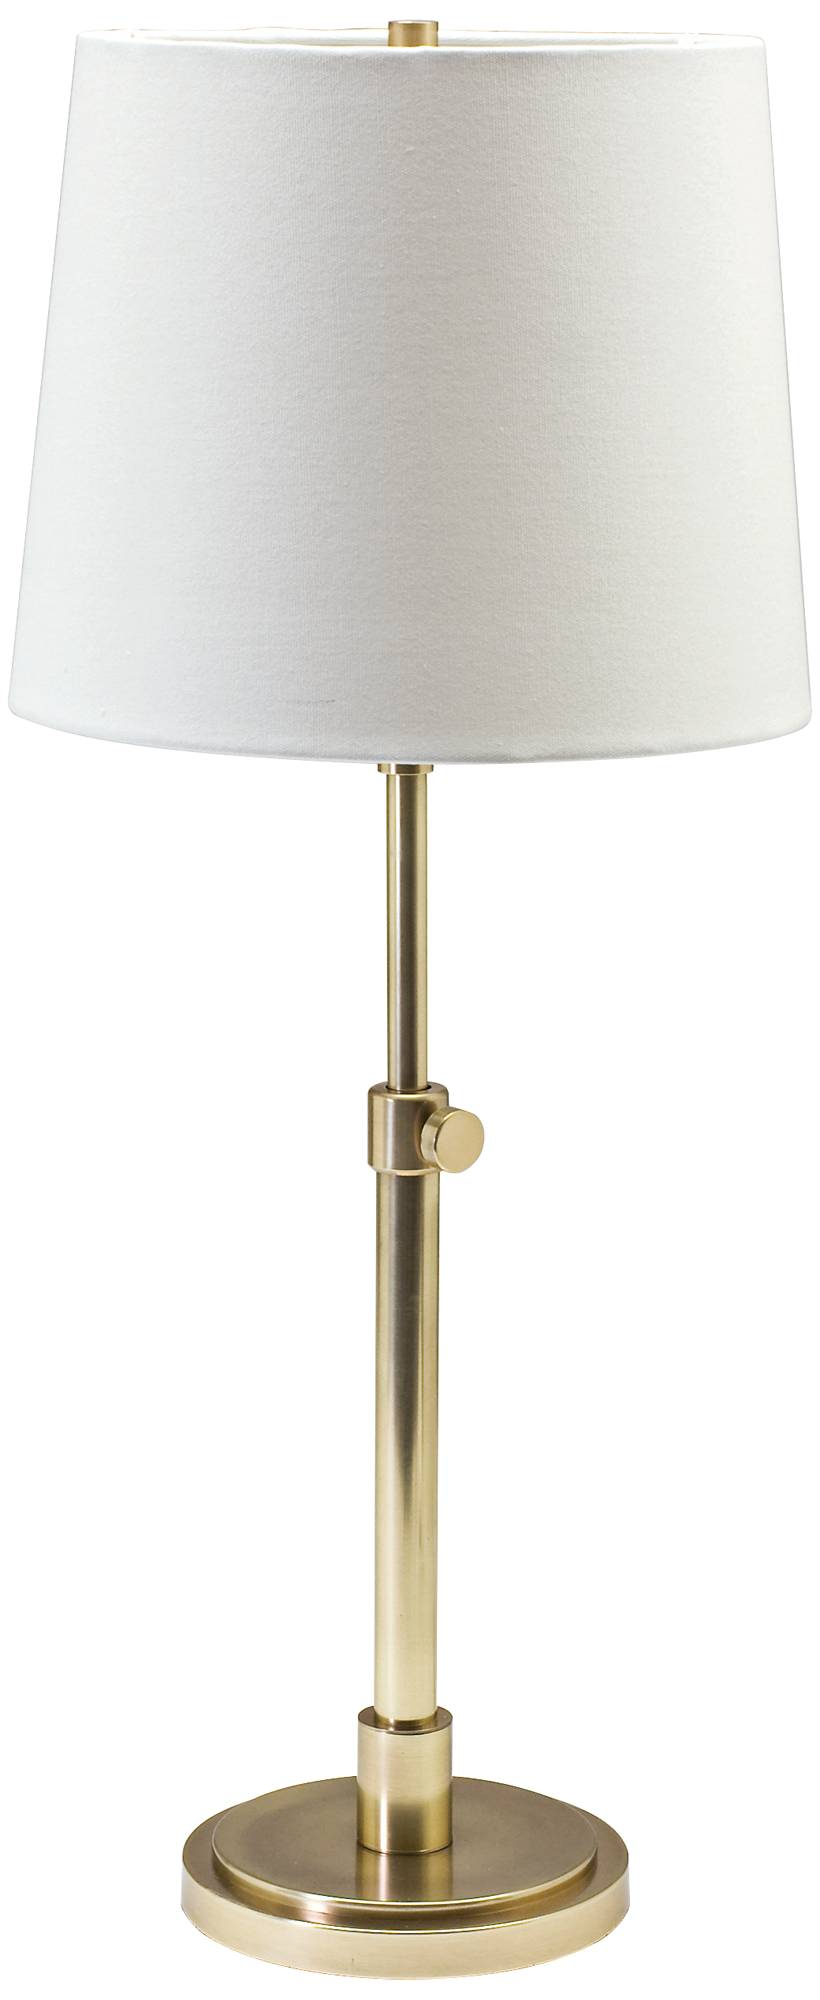 House of troy townhouse adjustable raw brass table lamp